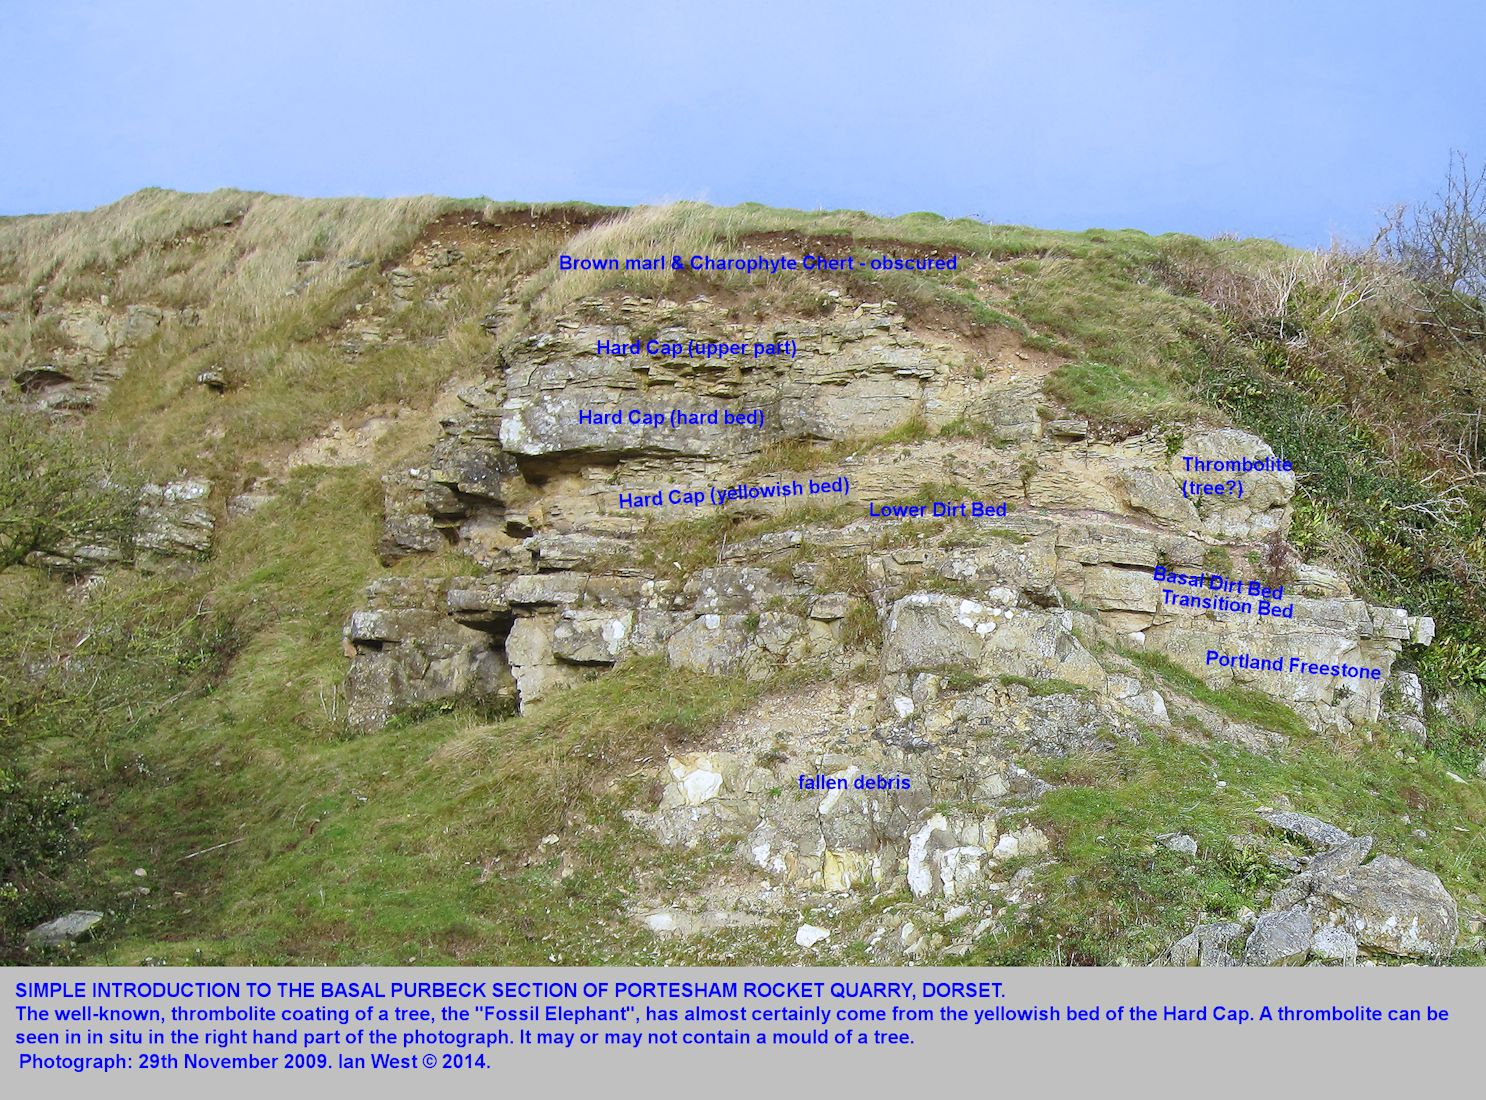 A general and introductory view of the basal Purbeck sequence exposed at Portesham Quarry, Dorset, in November 2009